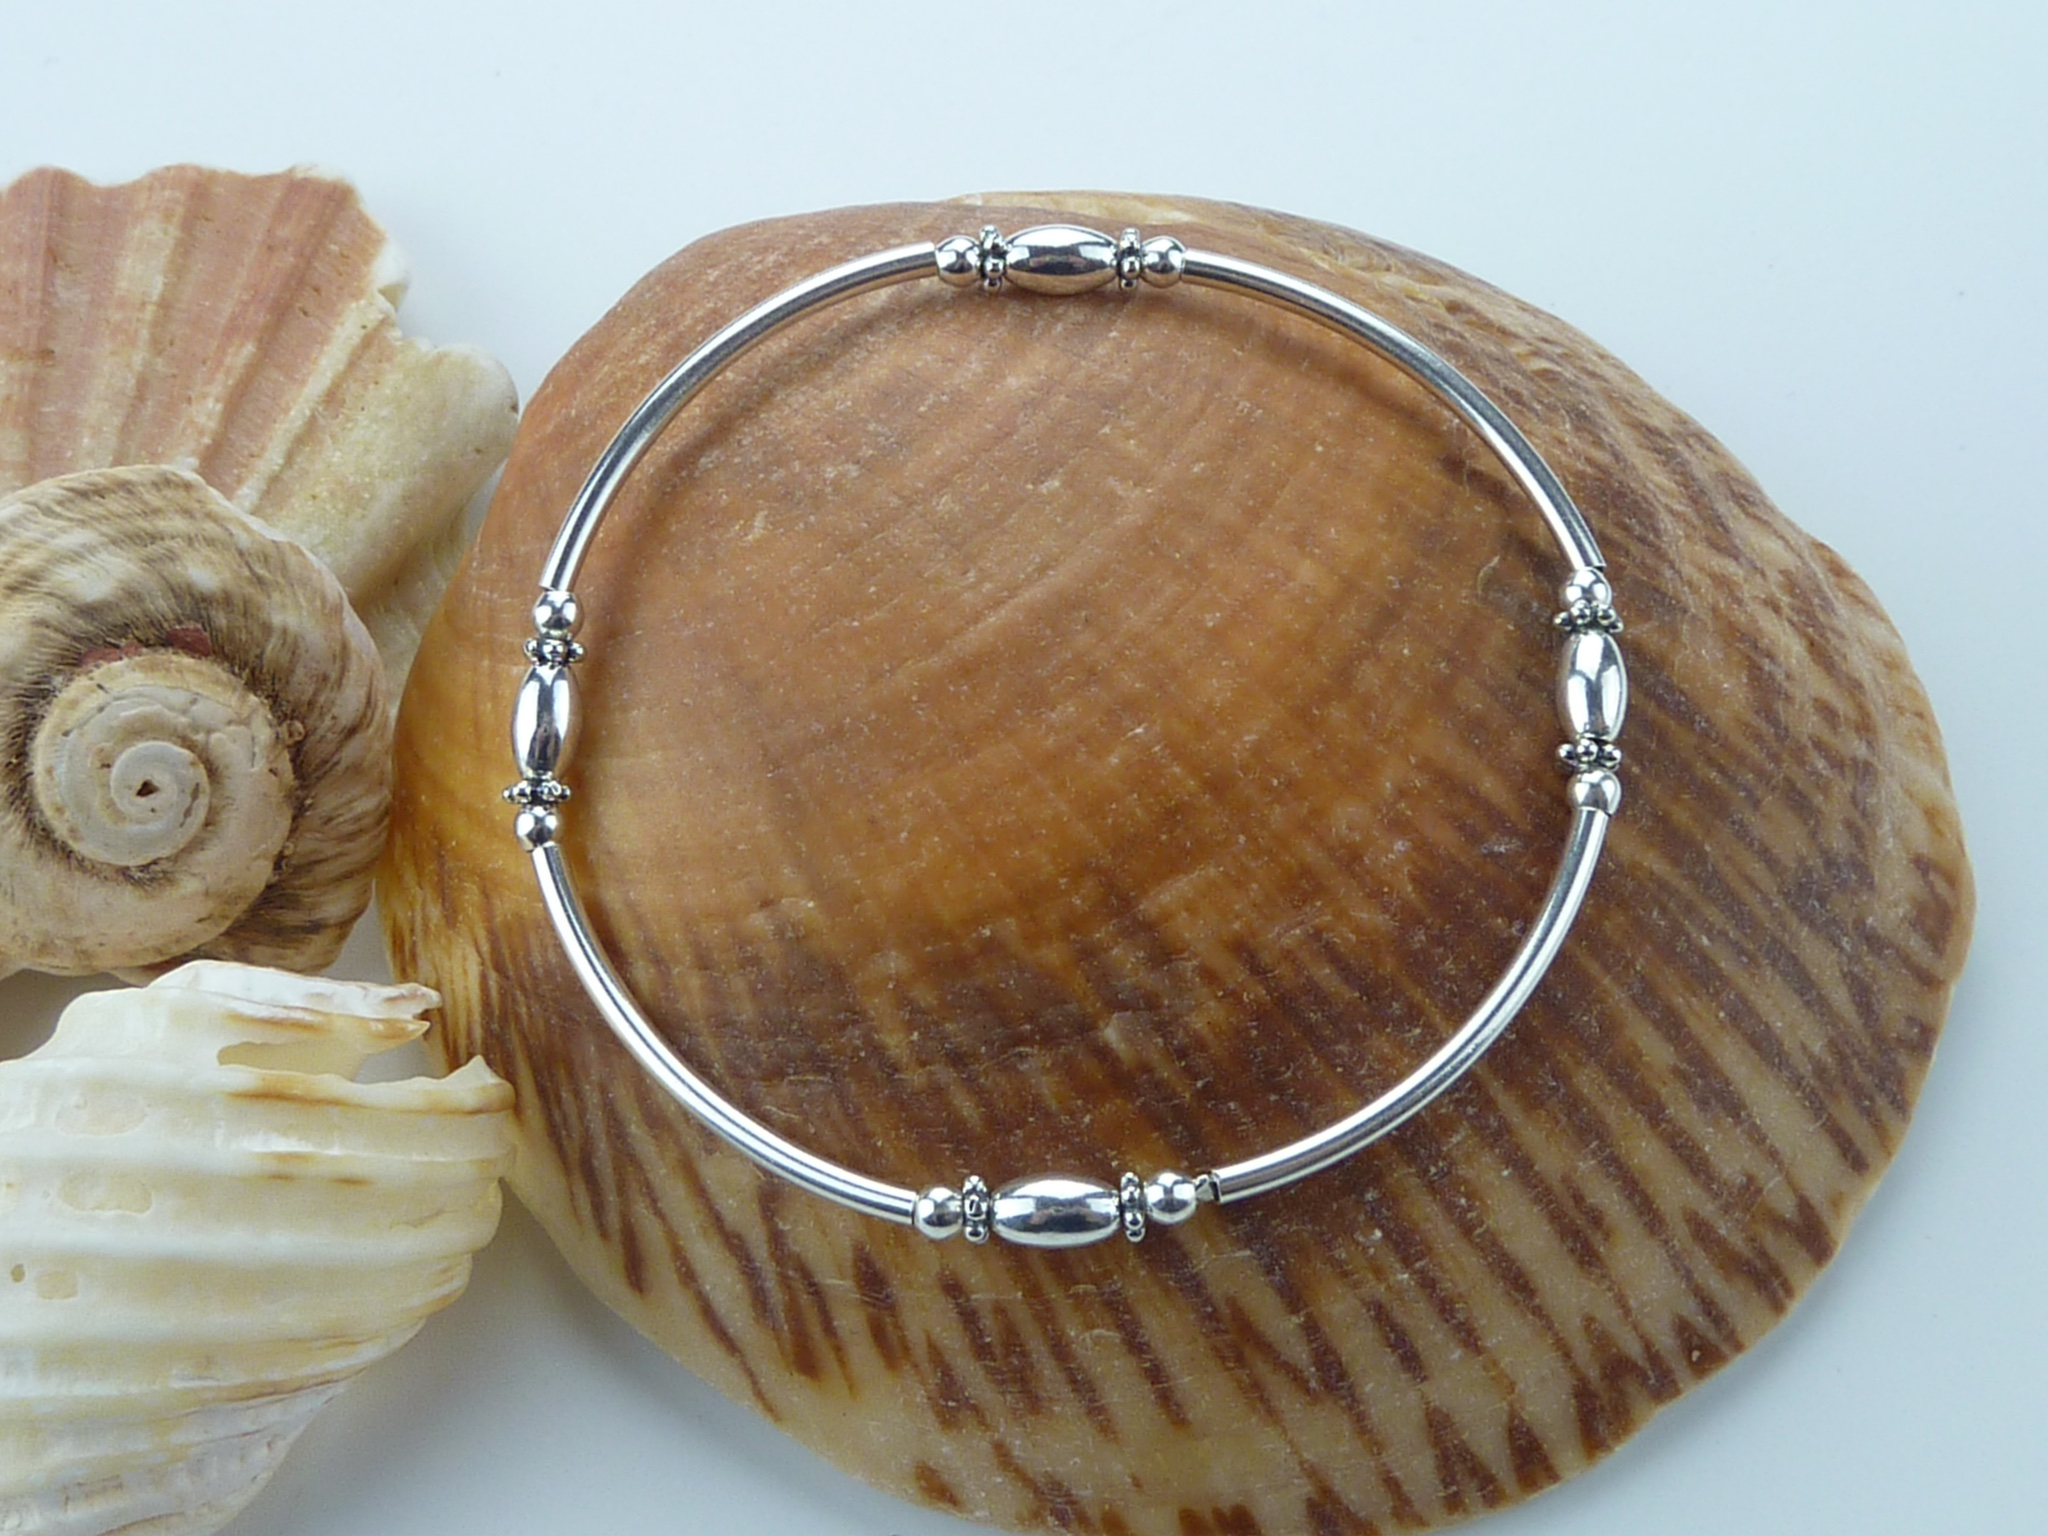 Sterling silver bar bracelet on a seashell